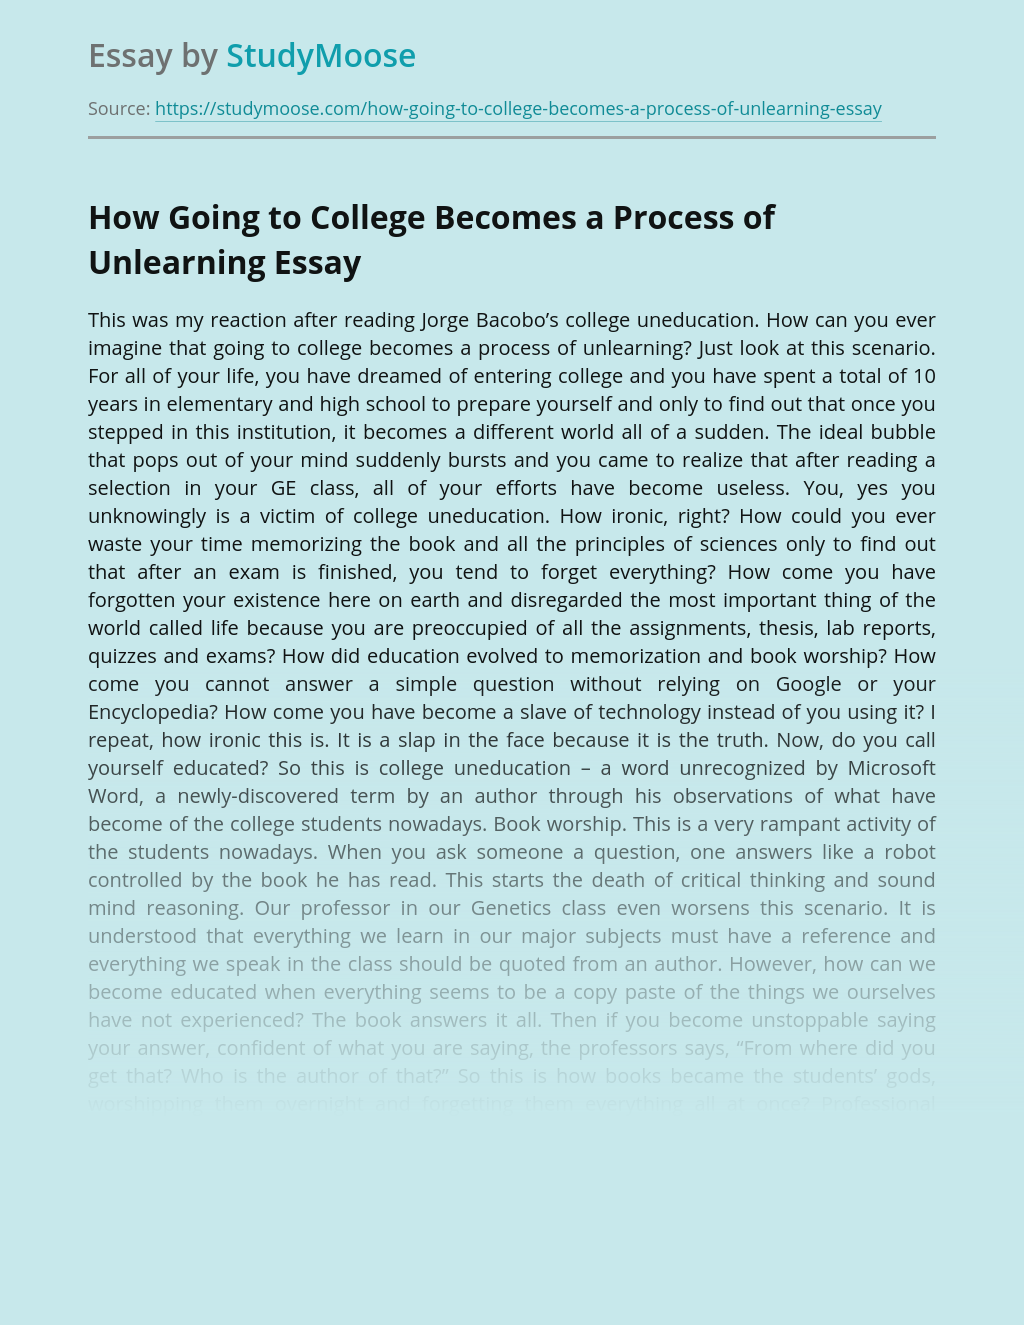 How Going to College Becomes a Process of Unlearning